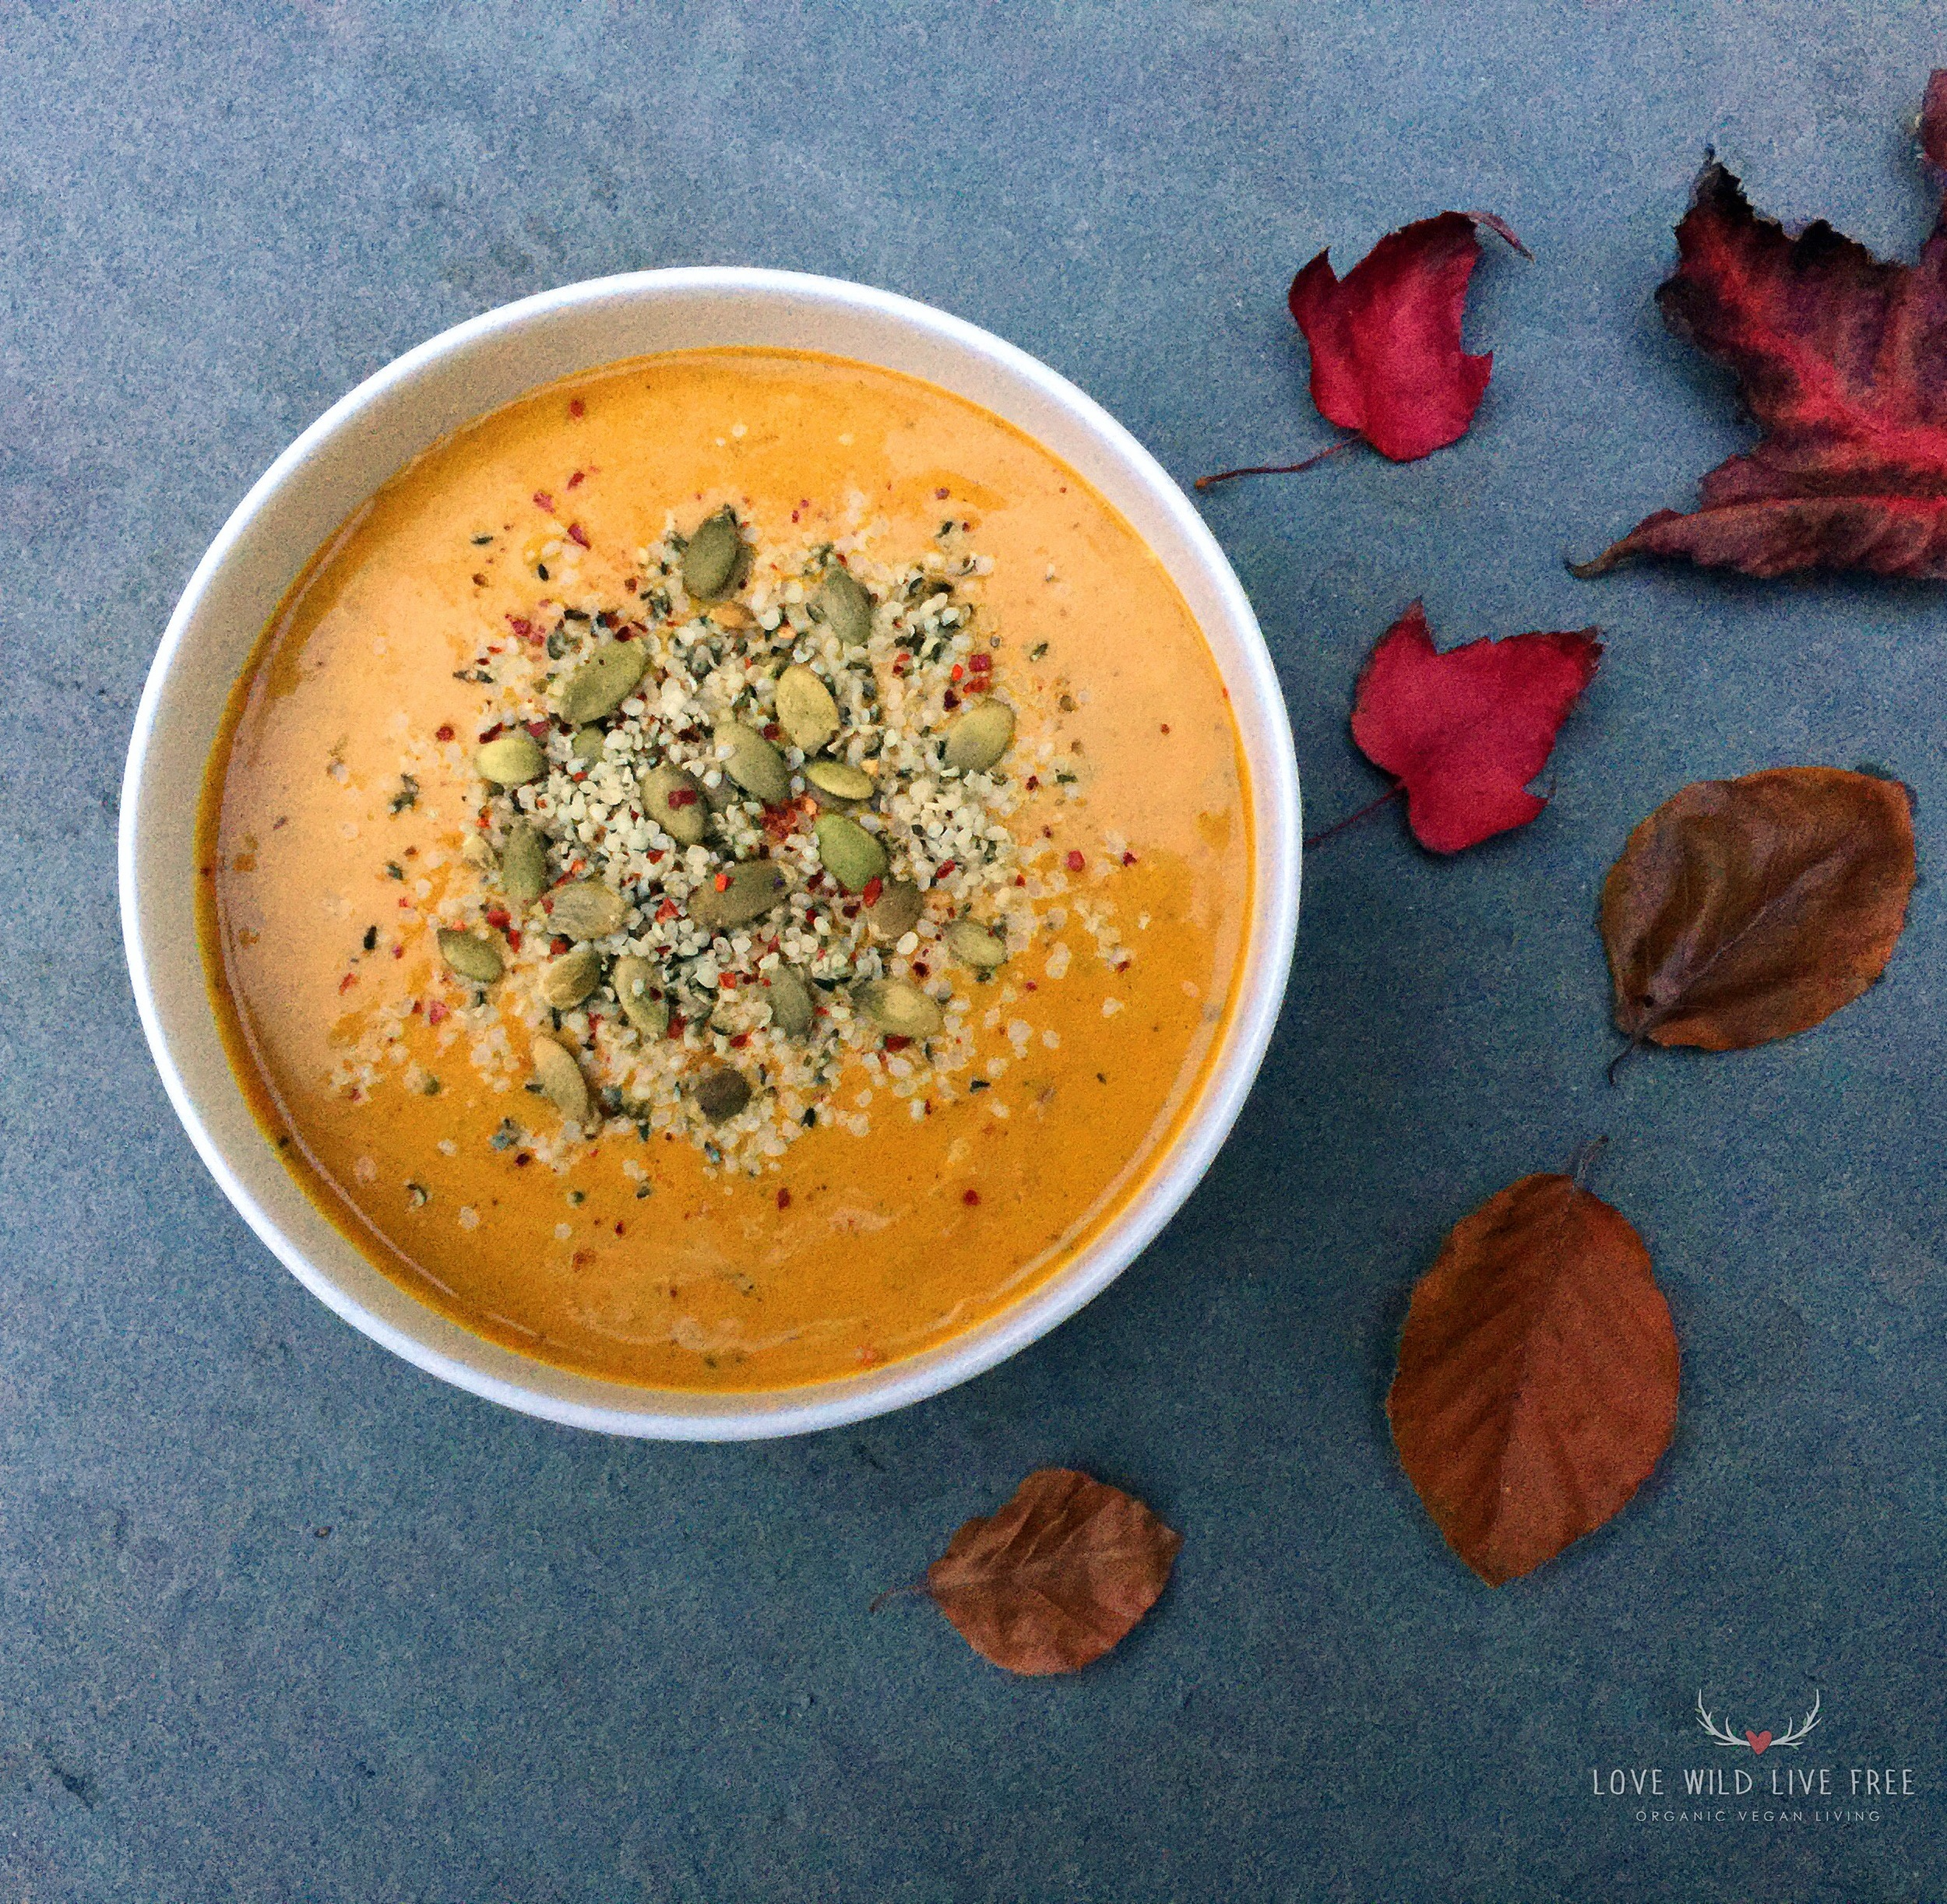 Creamy vegan coconut curry butternut squash soup, topped with raw pumpkin seeds, hemp hearts and red pepper flakes! Immune boosting spices and clean, dairy-free ingredients, for a warming meal as the cool weather rolls in.